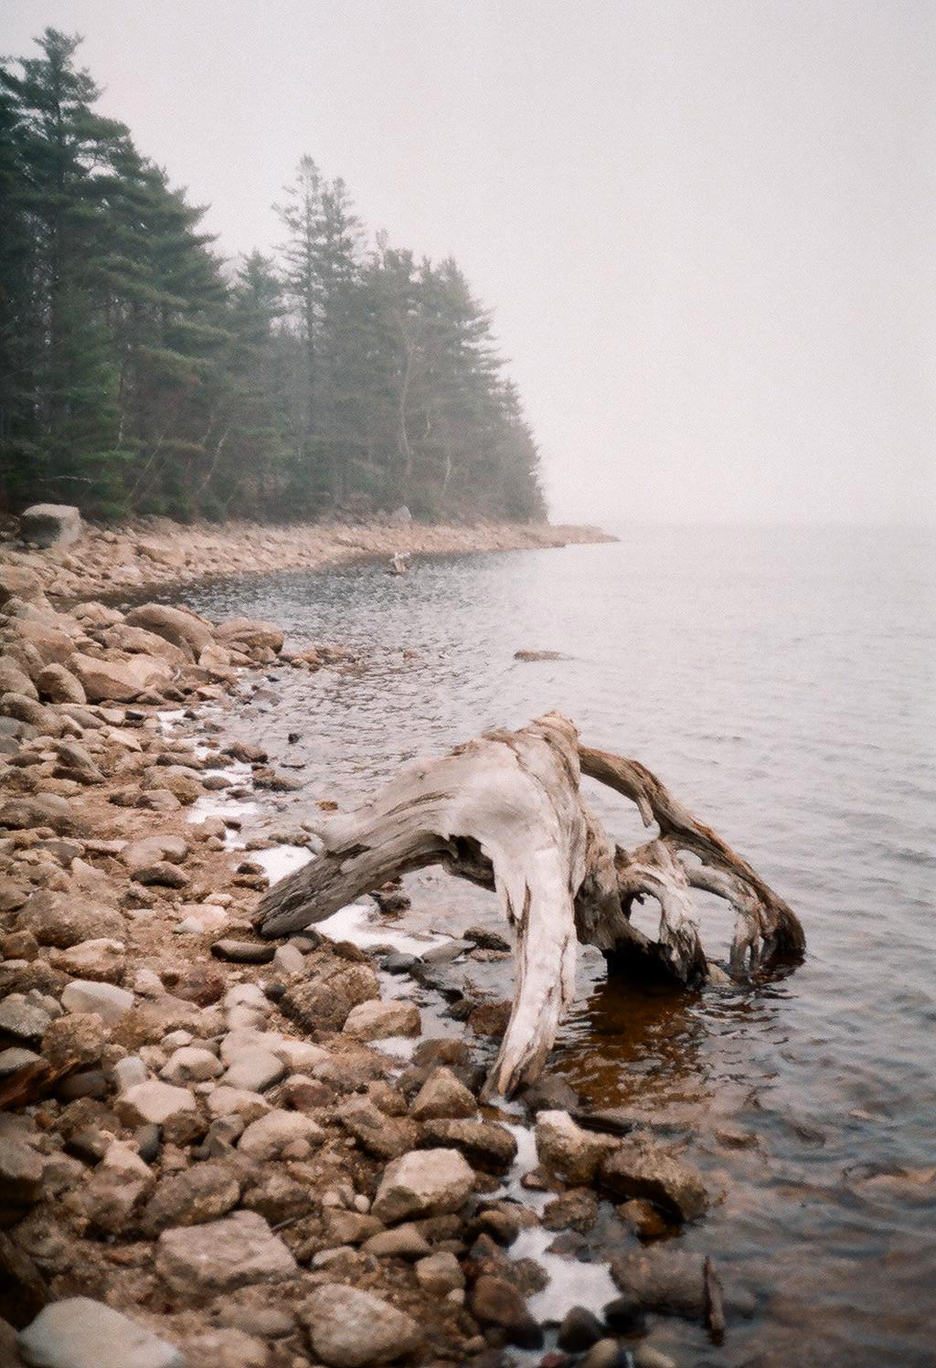 Driftwood on the coast